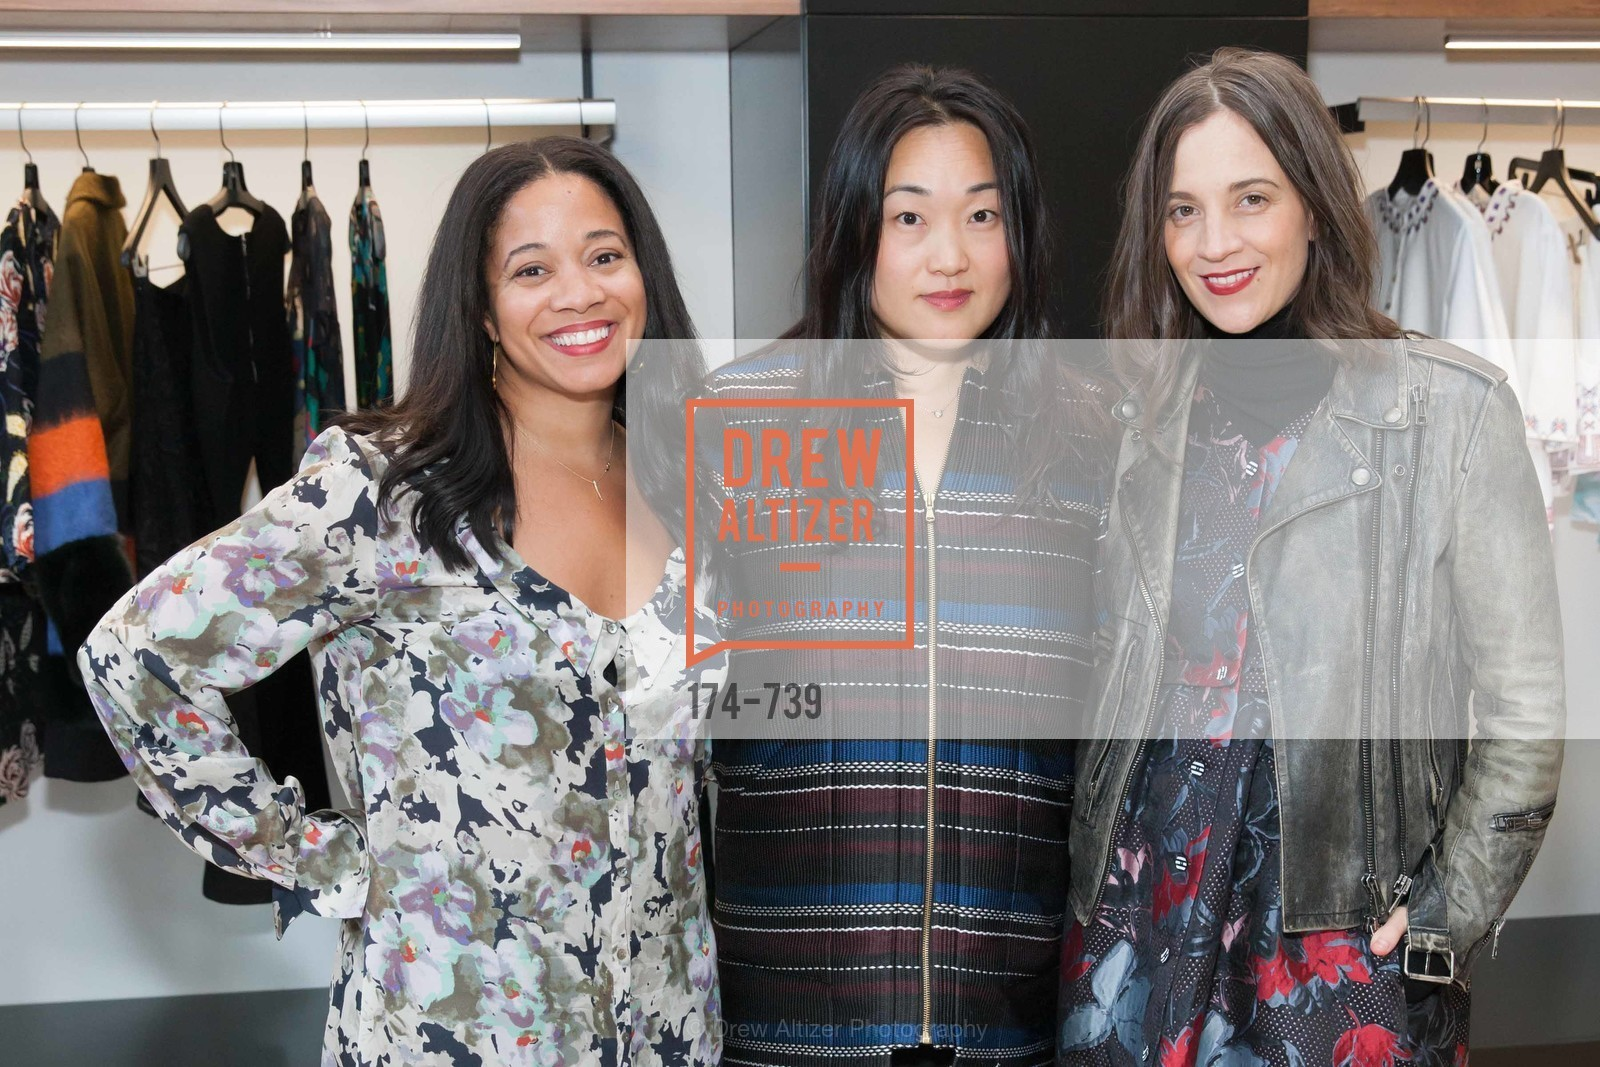 Maloni Goss, Mary Song, Erin Beatty, BETTY LIN Store Opening - VIPS, US, May 20th, 2015,Drew Altizer, Drew Altizer Photography, full-service agency, private events, San Francisco photographer, photographer california